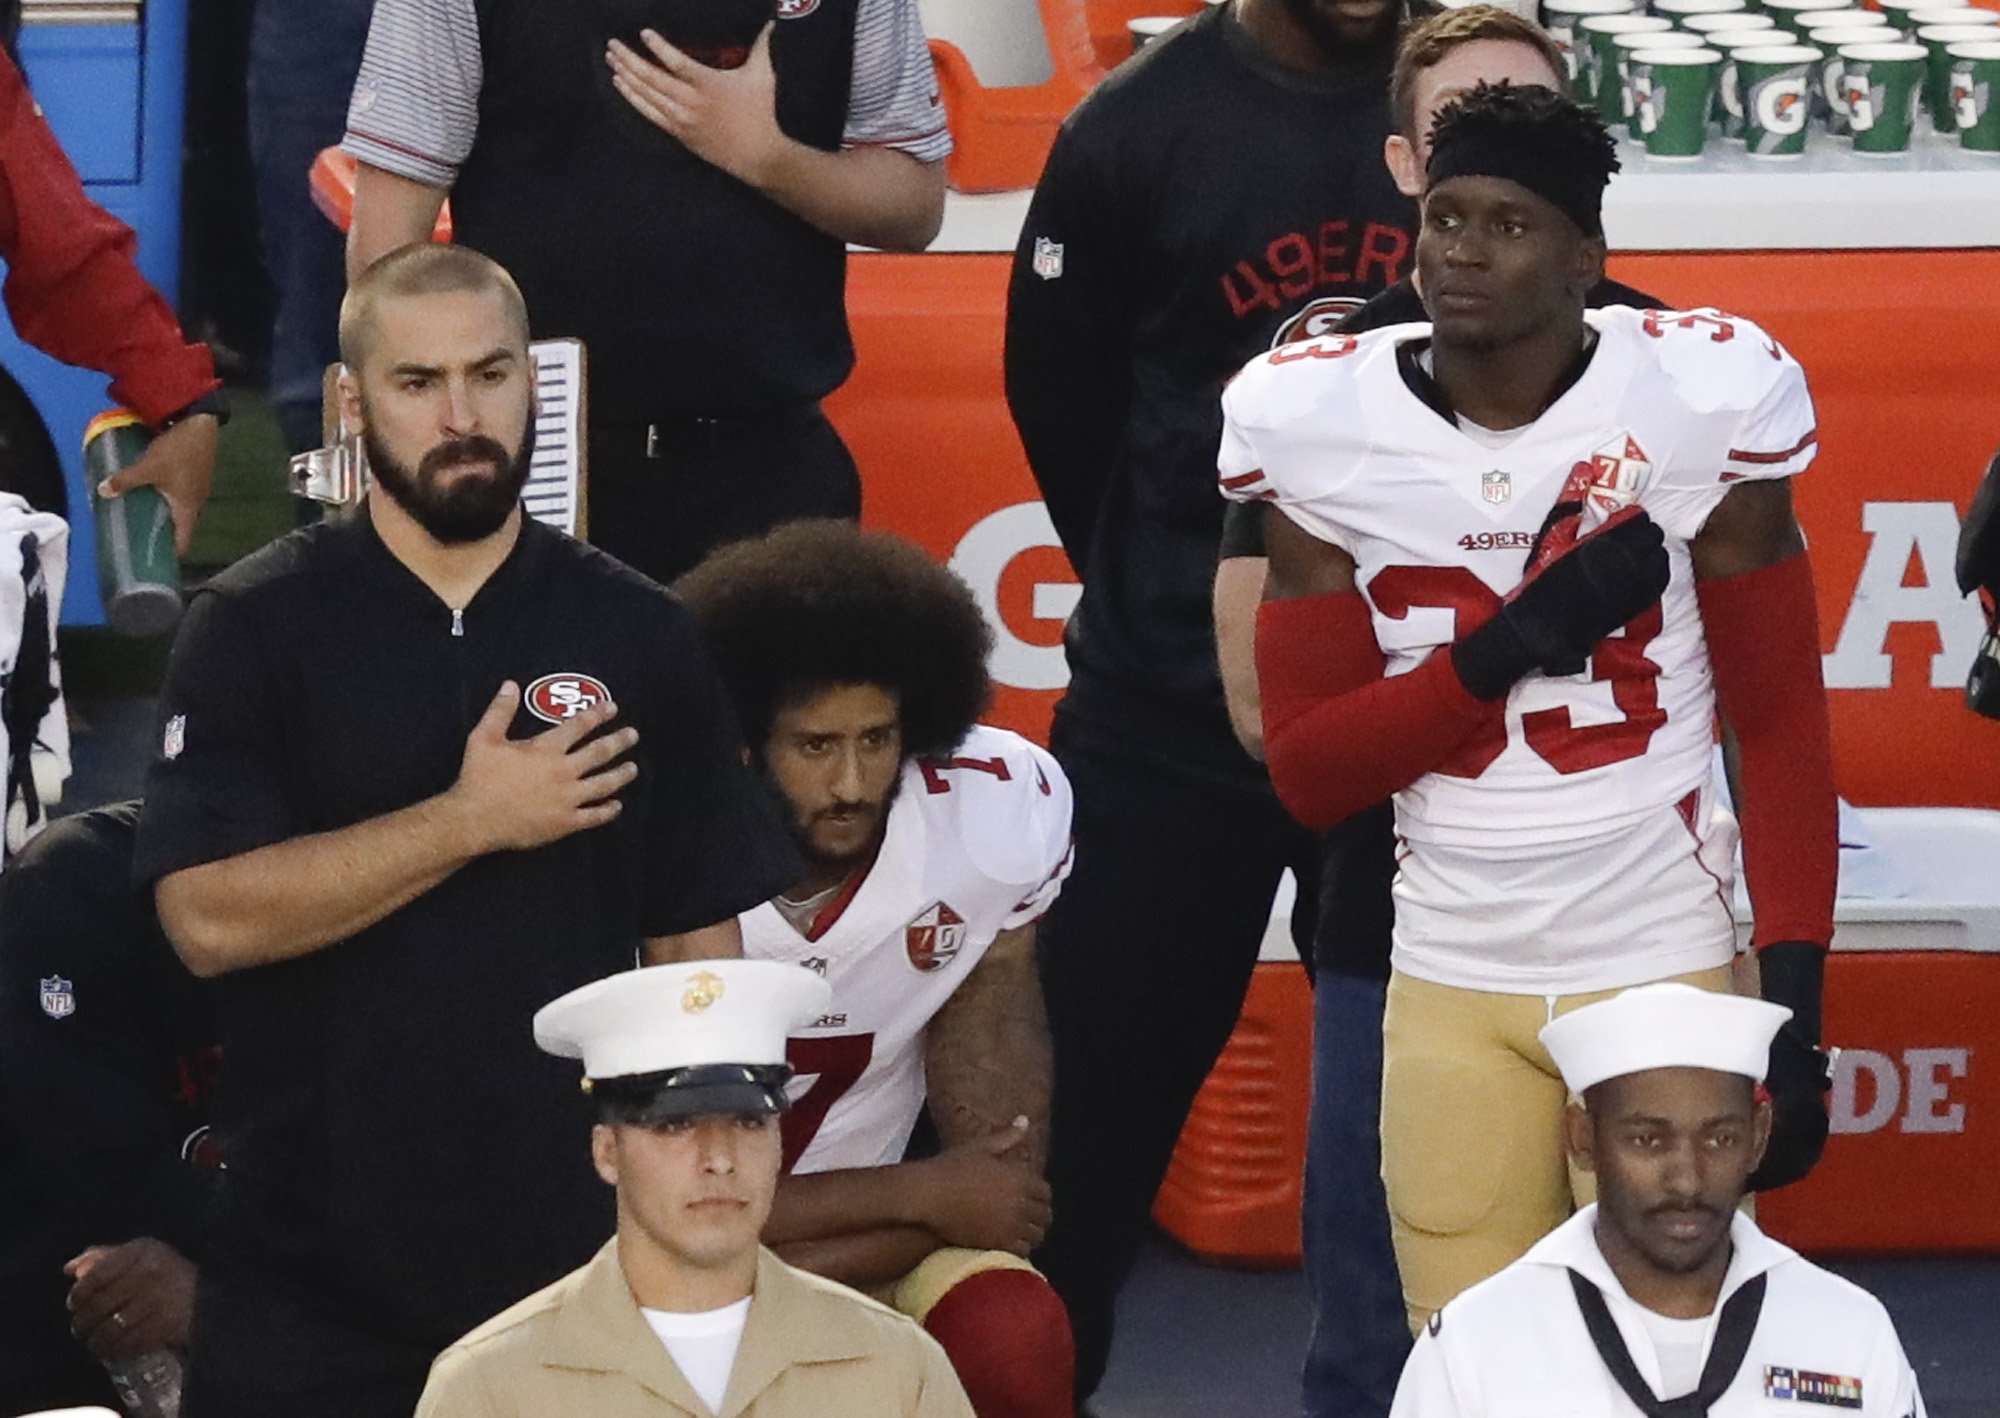 FILE - In this Thursday, Sept. 1, 2016 file photo, San Francisco 49ers quarterback Colin Kaepernick, middle, kneels during the national anthem before the team's NFL preseason football game against the San Diego Chargers, in San Diego. The Santa Clara poli